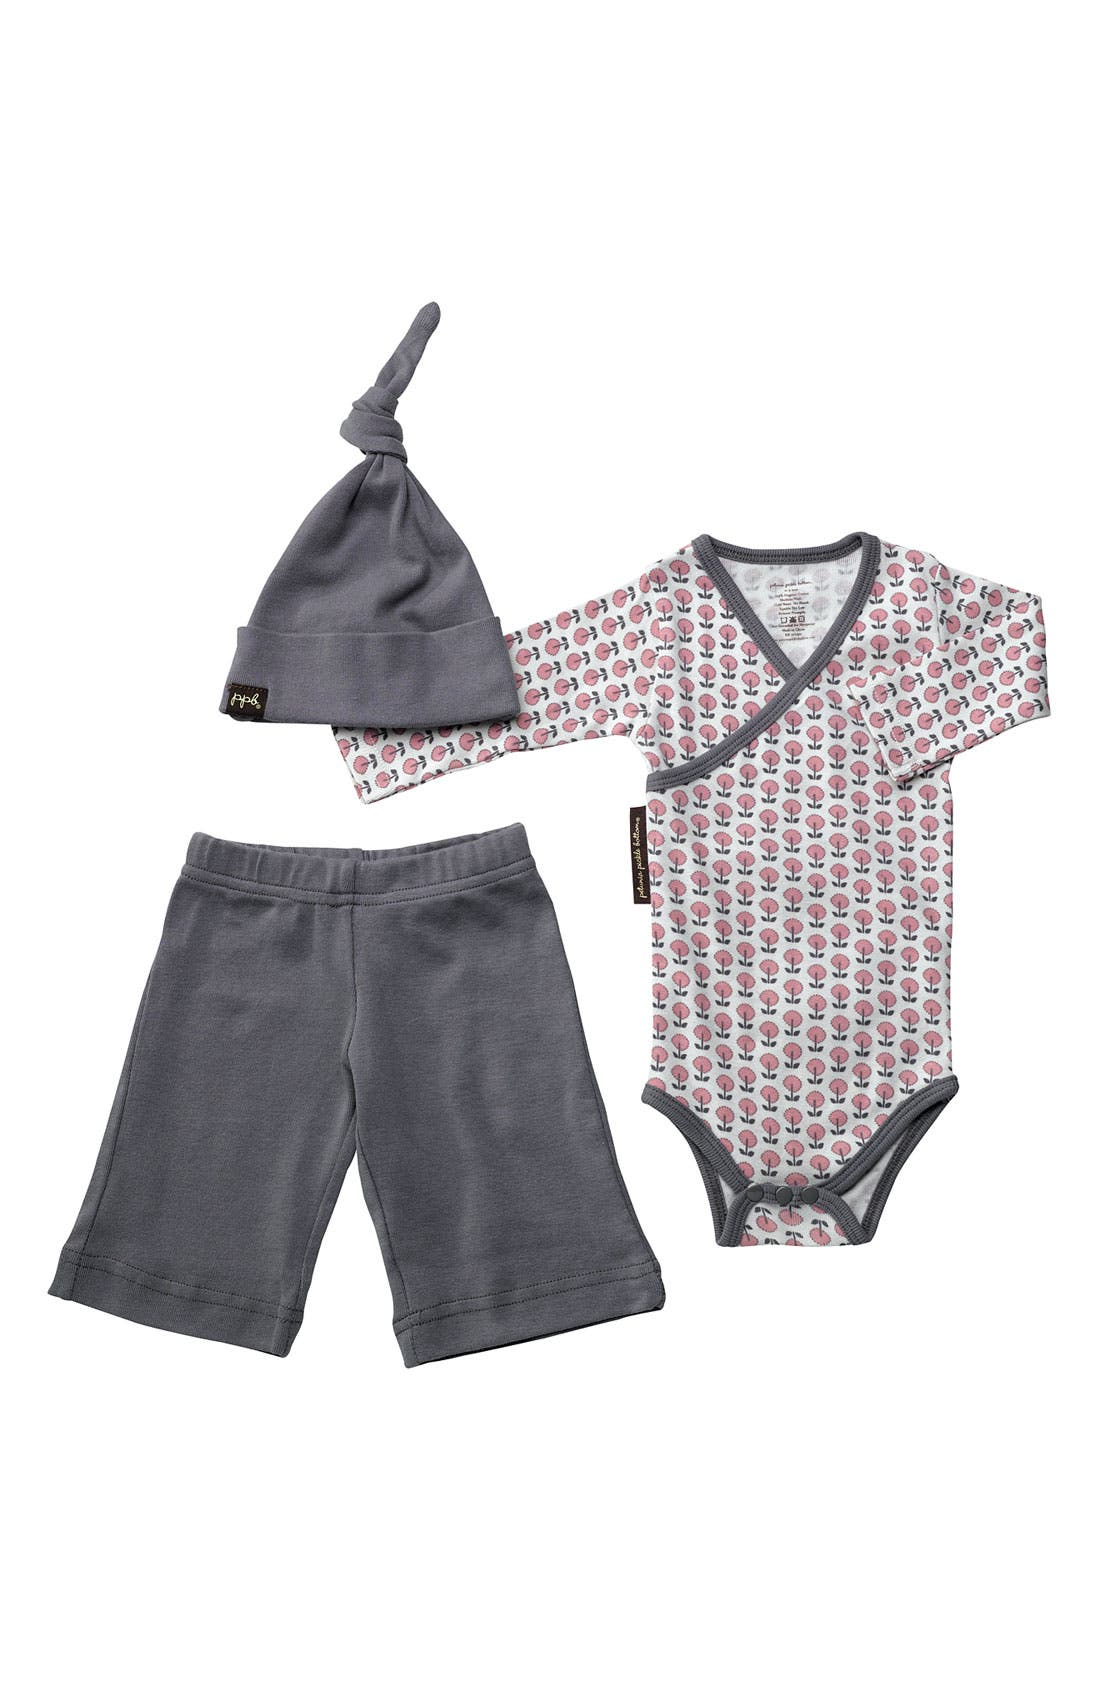 Main Image - Petunia Pickle Bottom Bodysuit, Pants & Hat Set (Infant)